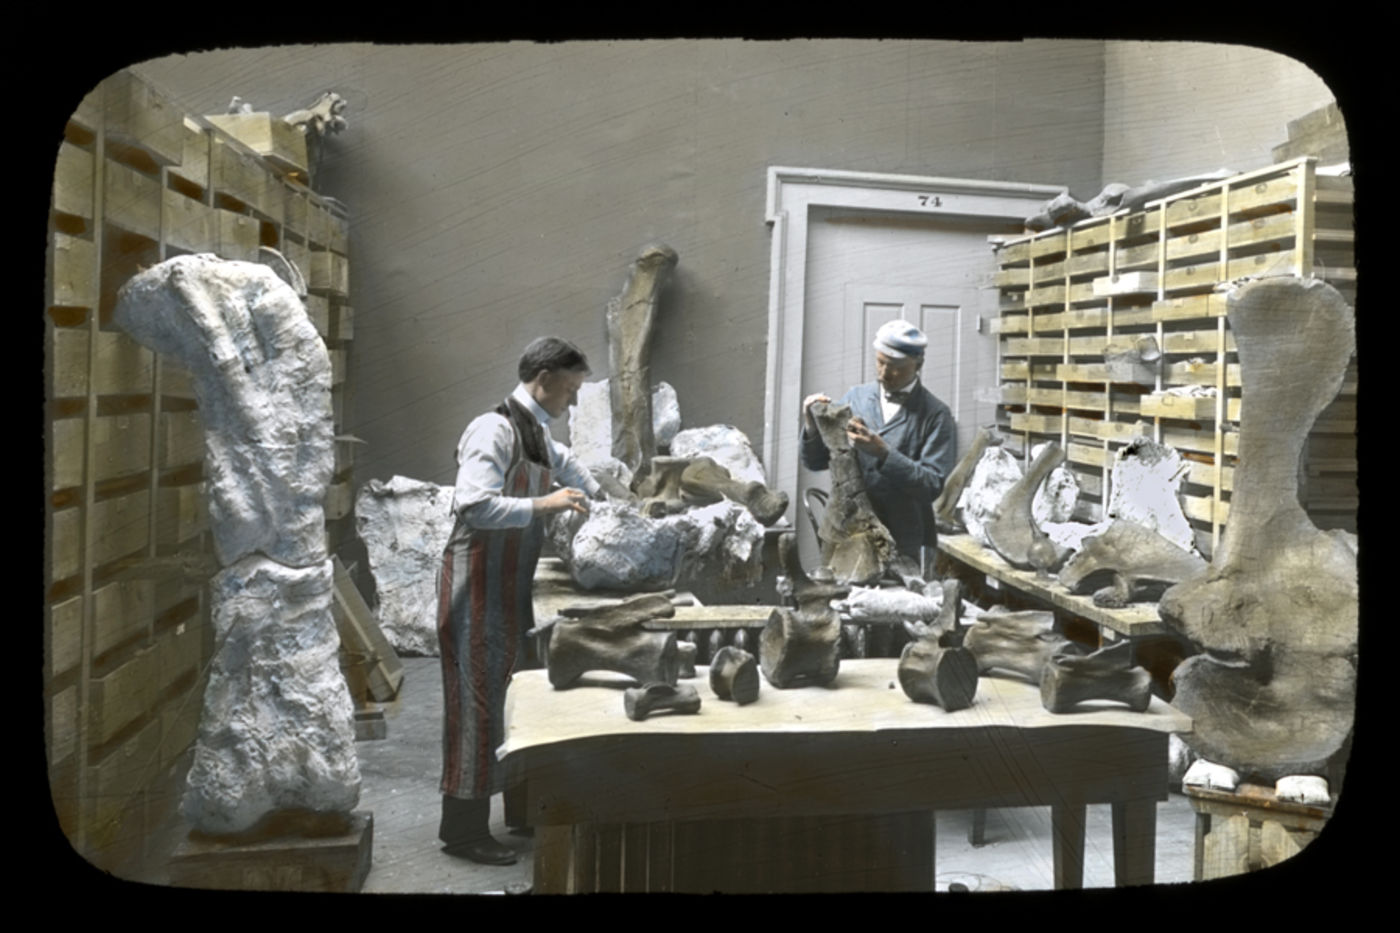 Two men stand at a table covered in large bones, both seemingly unpacking bones. Two especially large leg bones are propped up in the foreground. There are shelves lining both sides of the room.